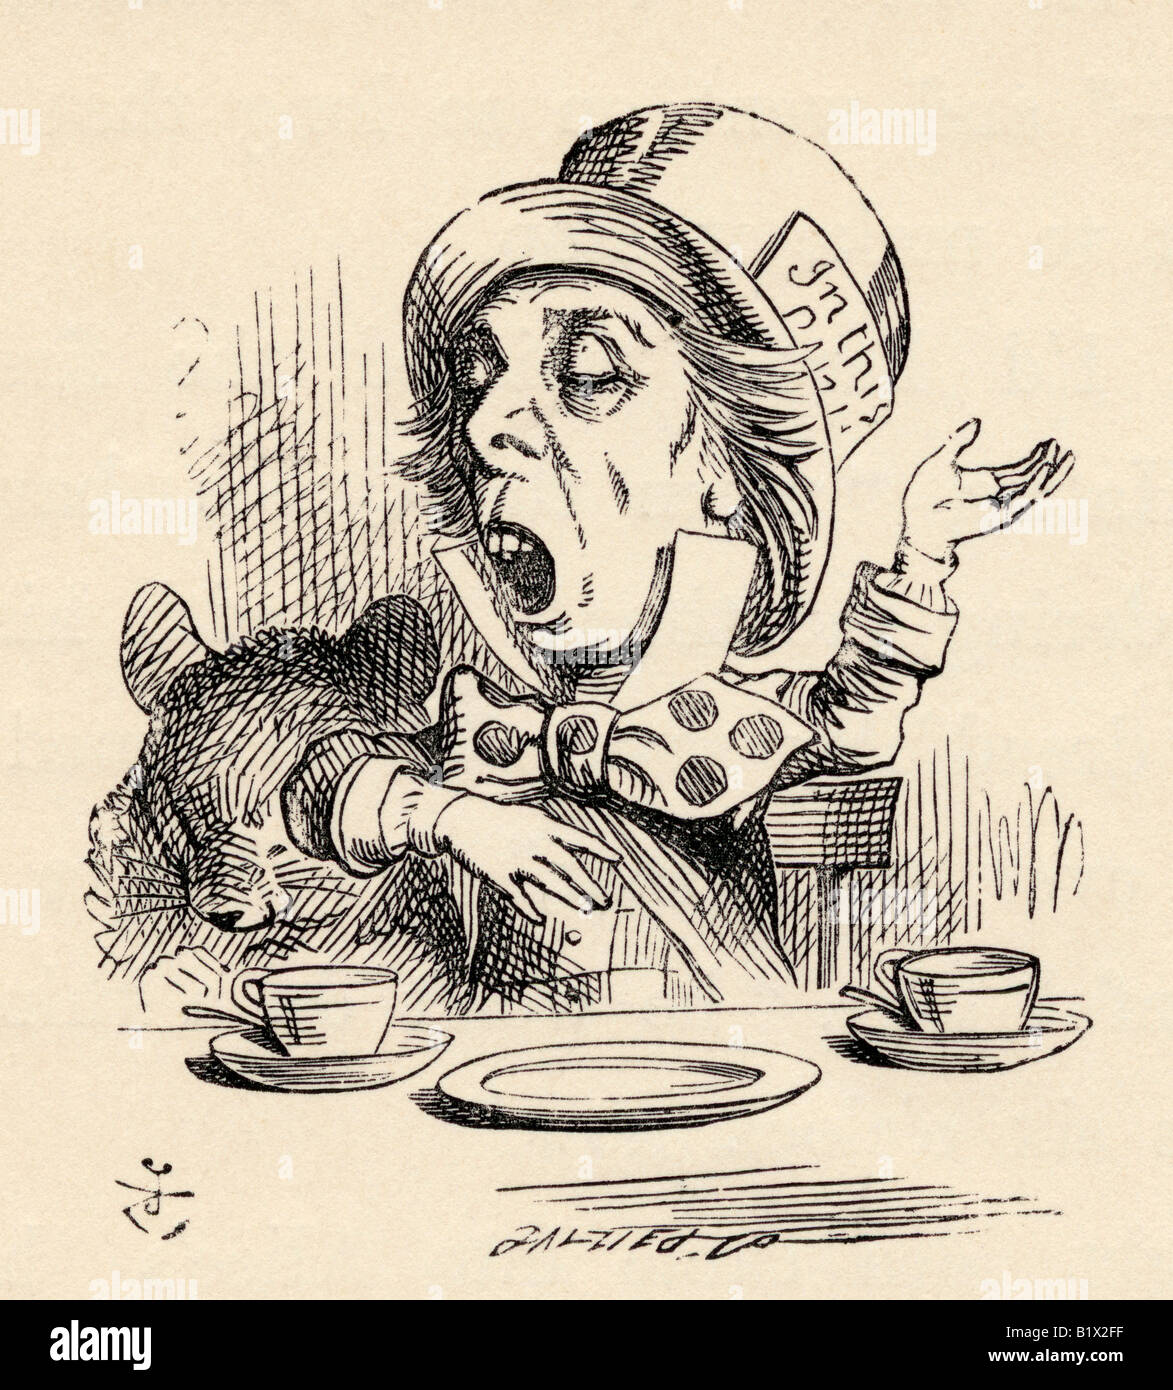 The Mad Hatter reciting his nonsense poem Twinkle Twinkle Little Bat - Stock Image